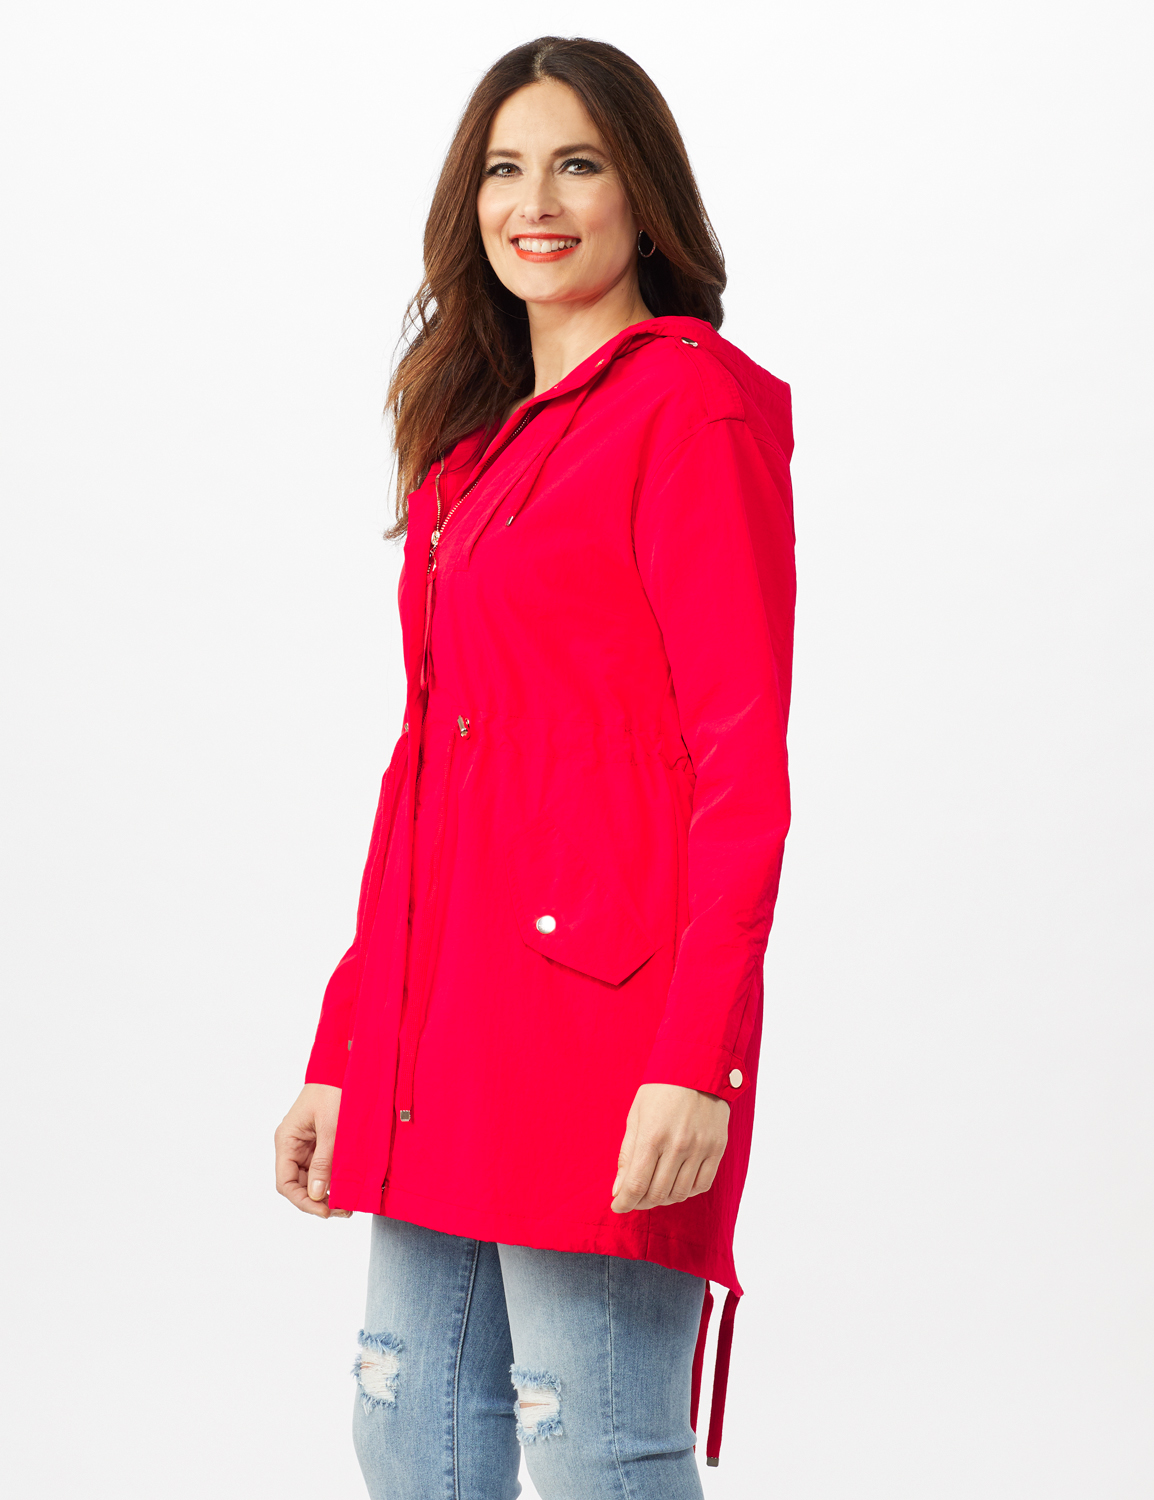 Hooded Zip Front Utility Jacket with Slant, Waist Drawcord, Chest Zip Pockets - R.red - Alternate Image